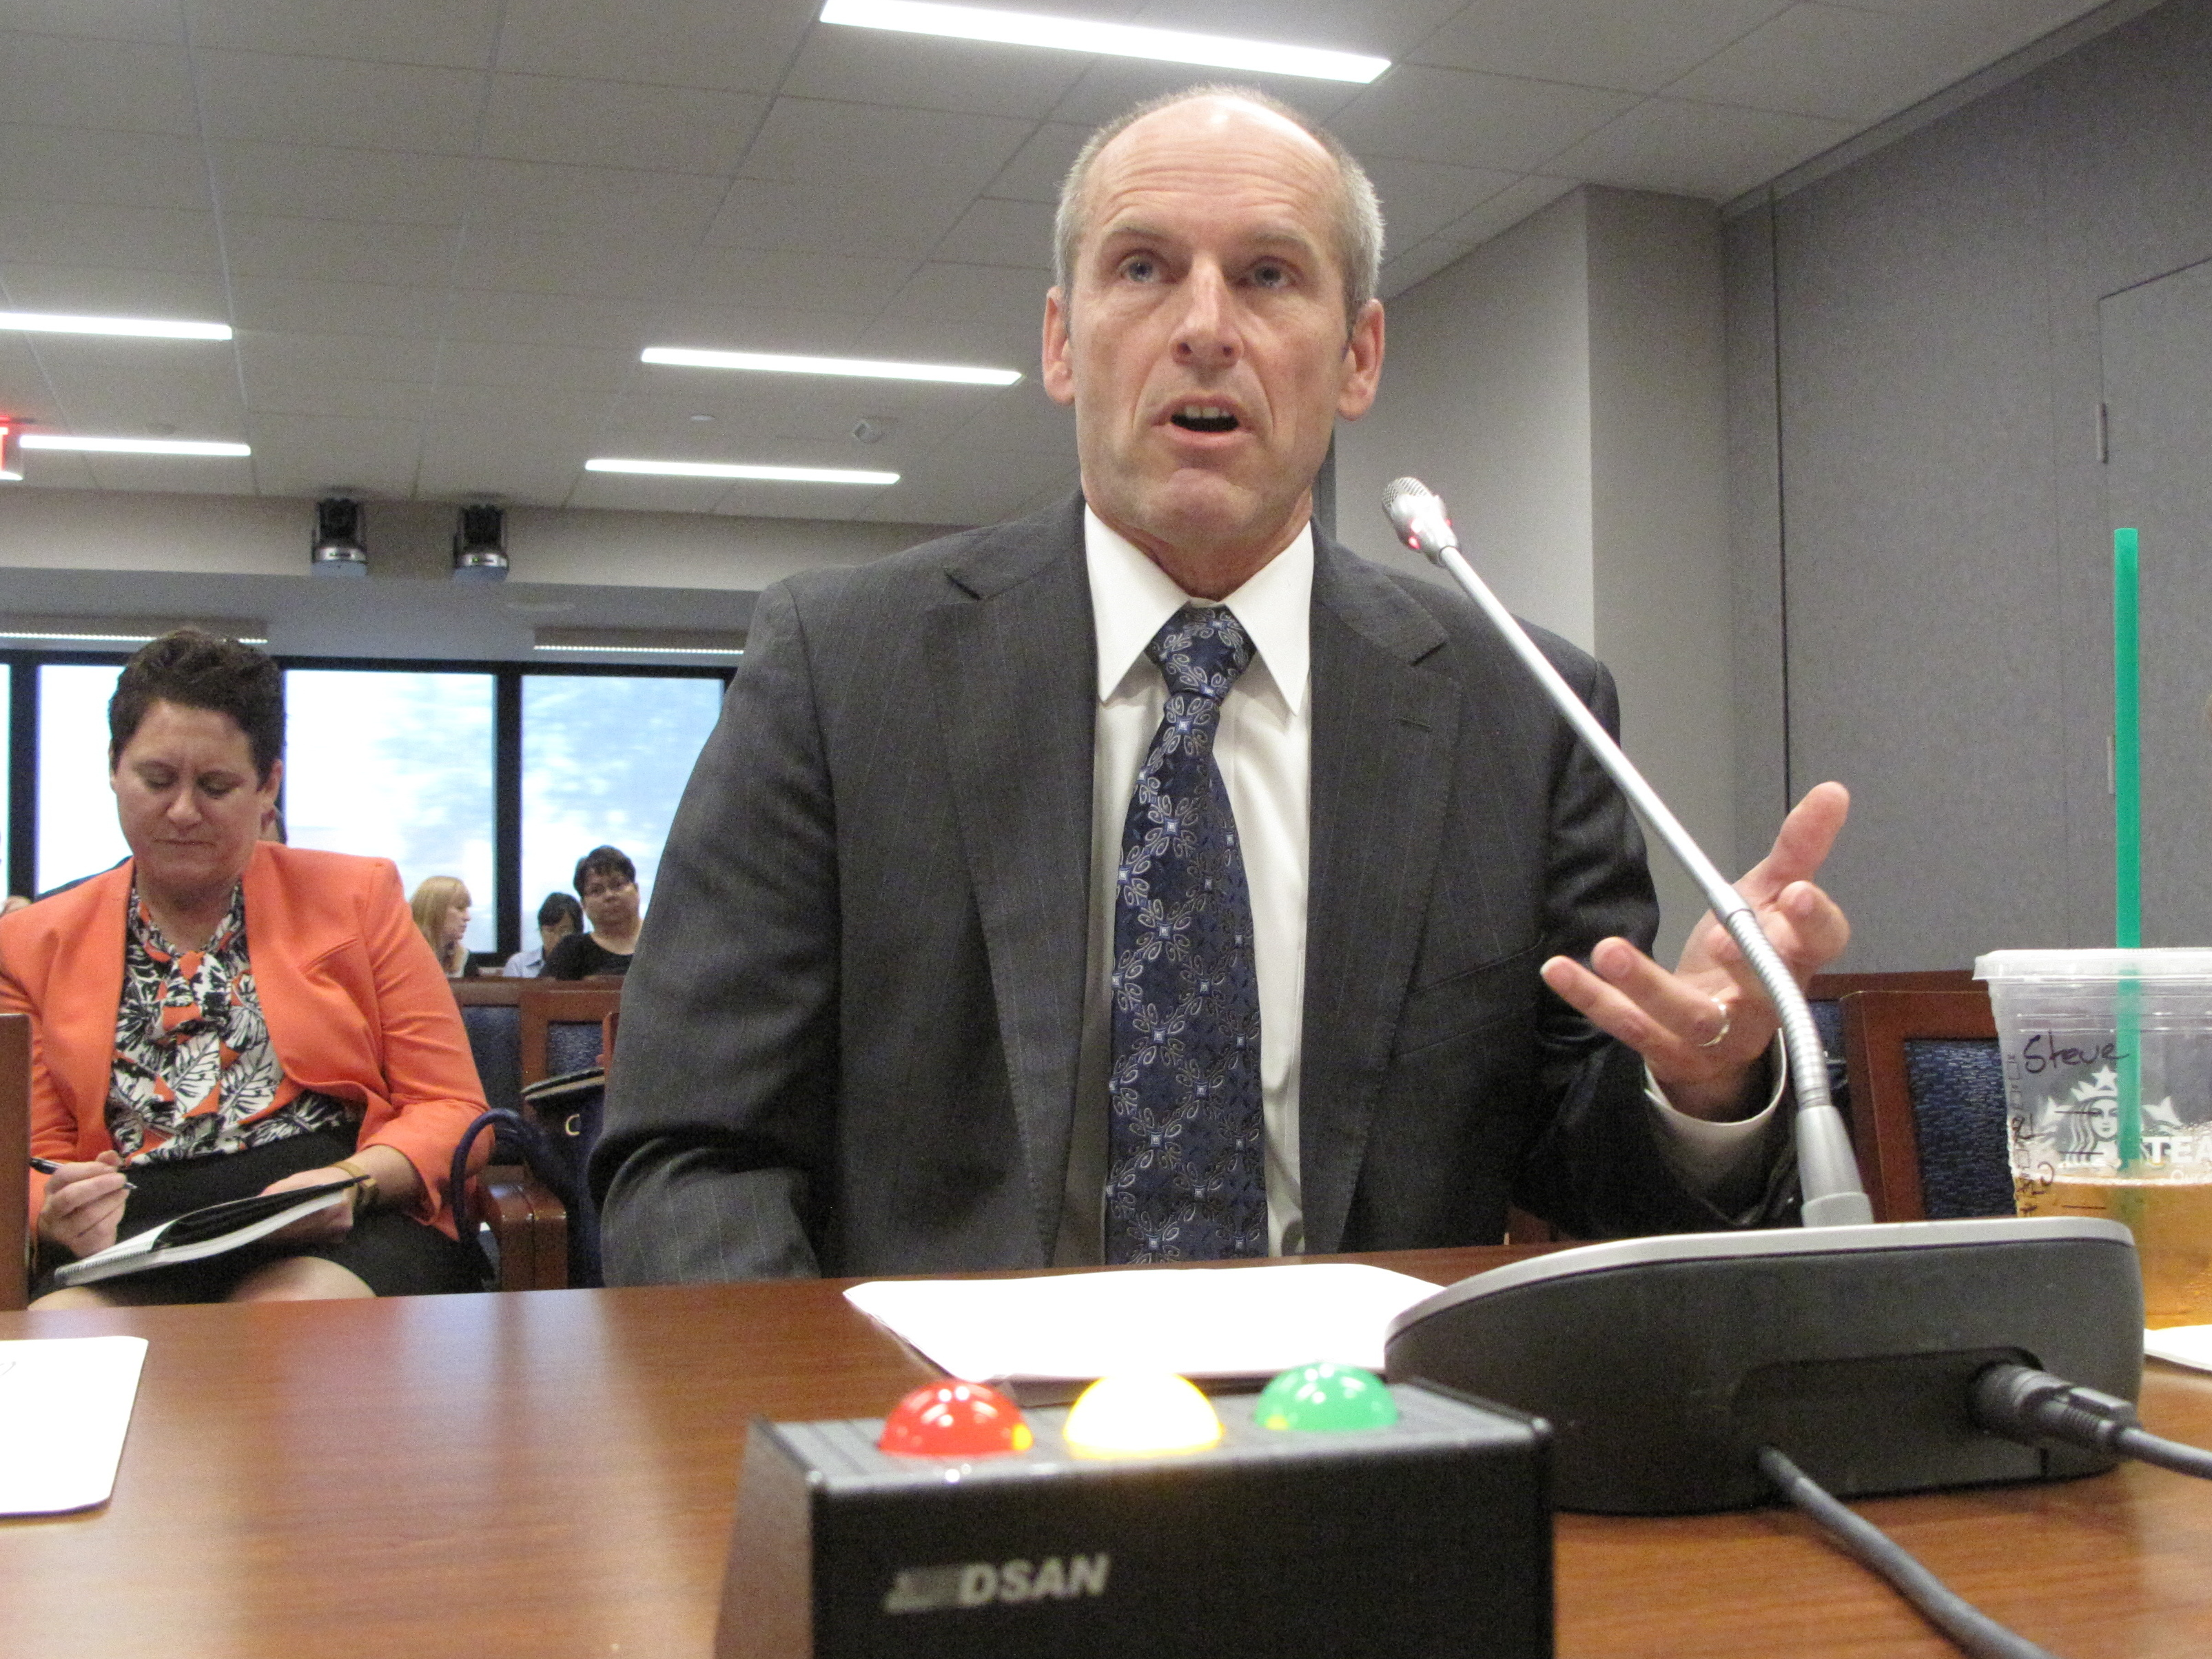 SawStop founder Steve Gass testifies at a Consumer Product Safety Commission hearing. (Chris Arnold/NPR)